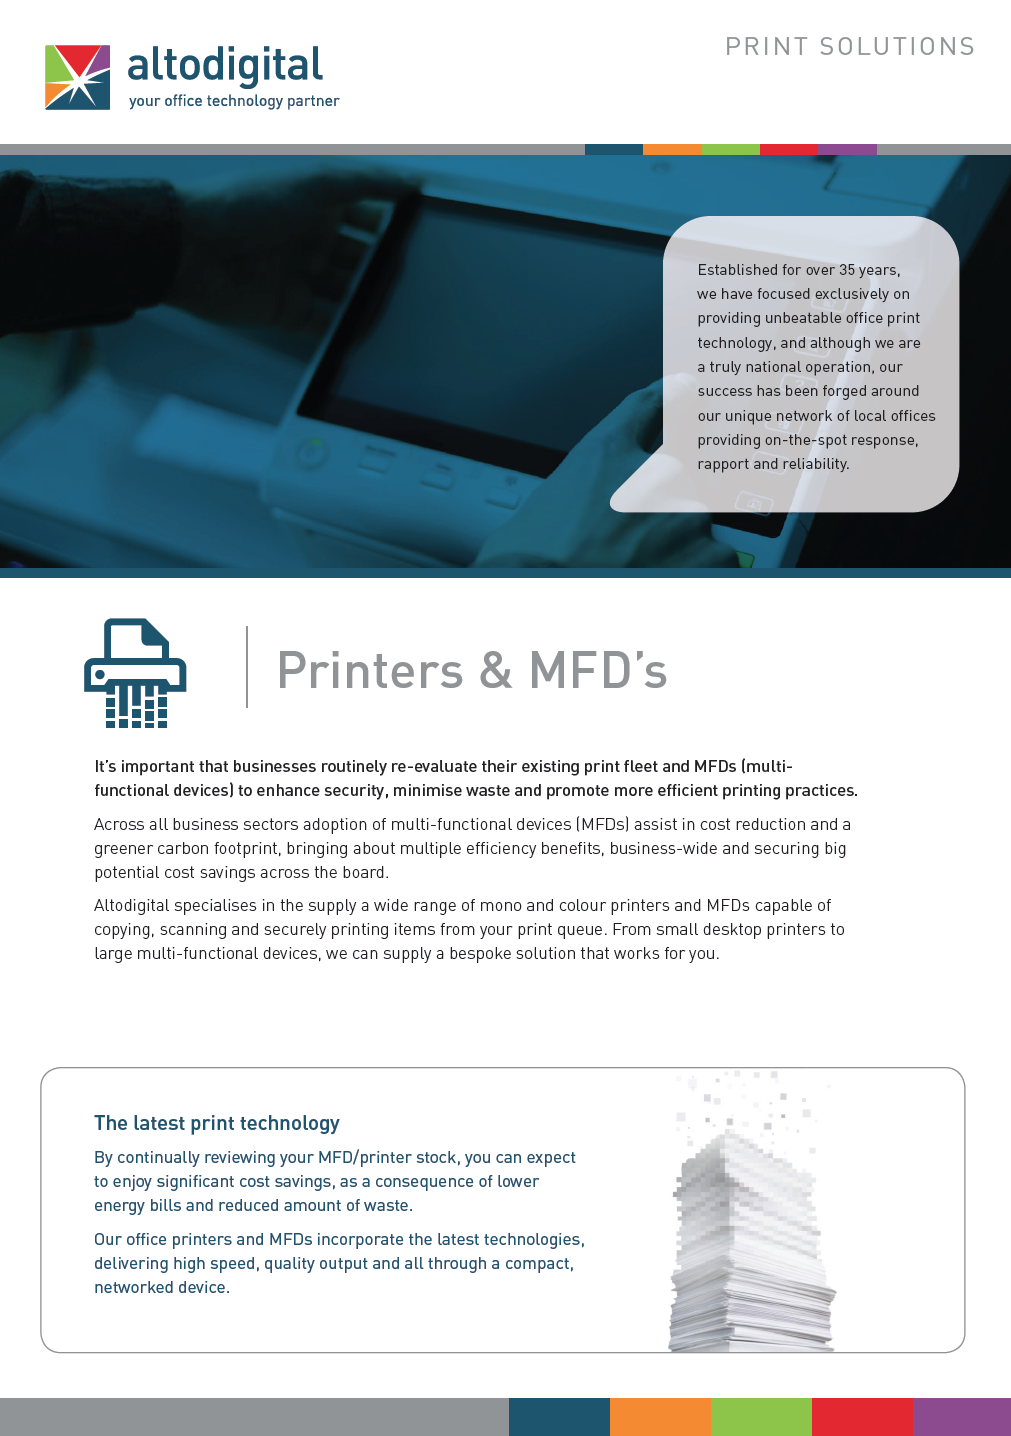 Get our latest Printer & MFD brochure